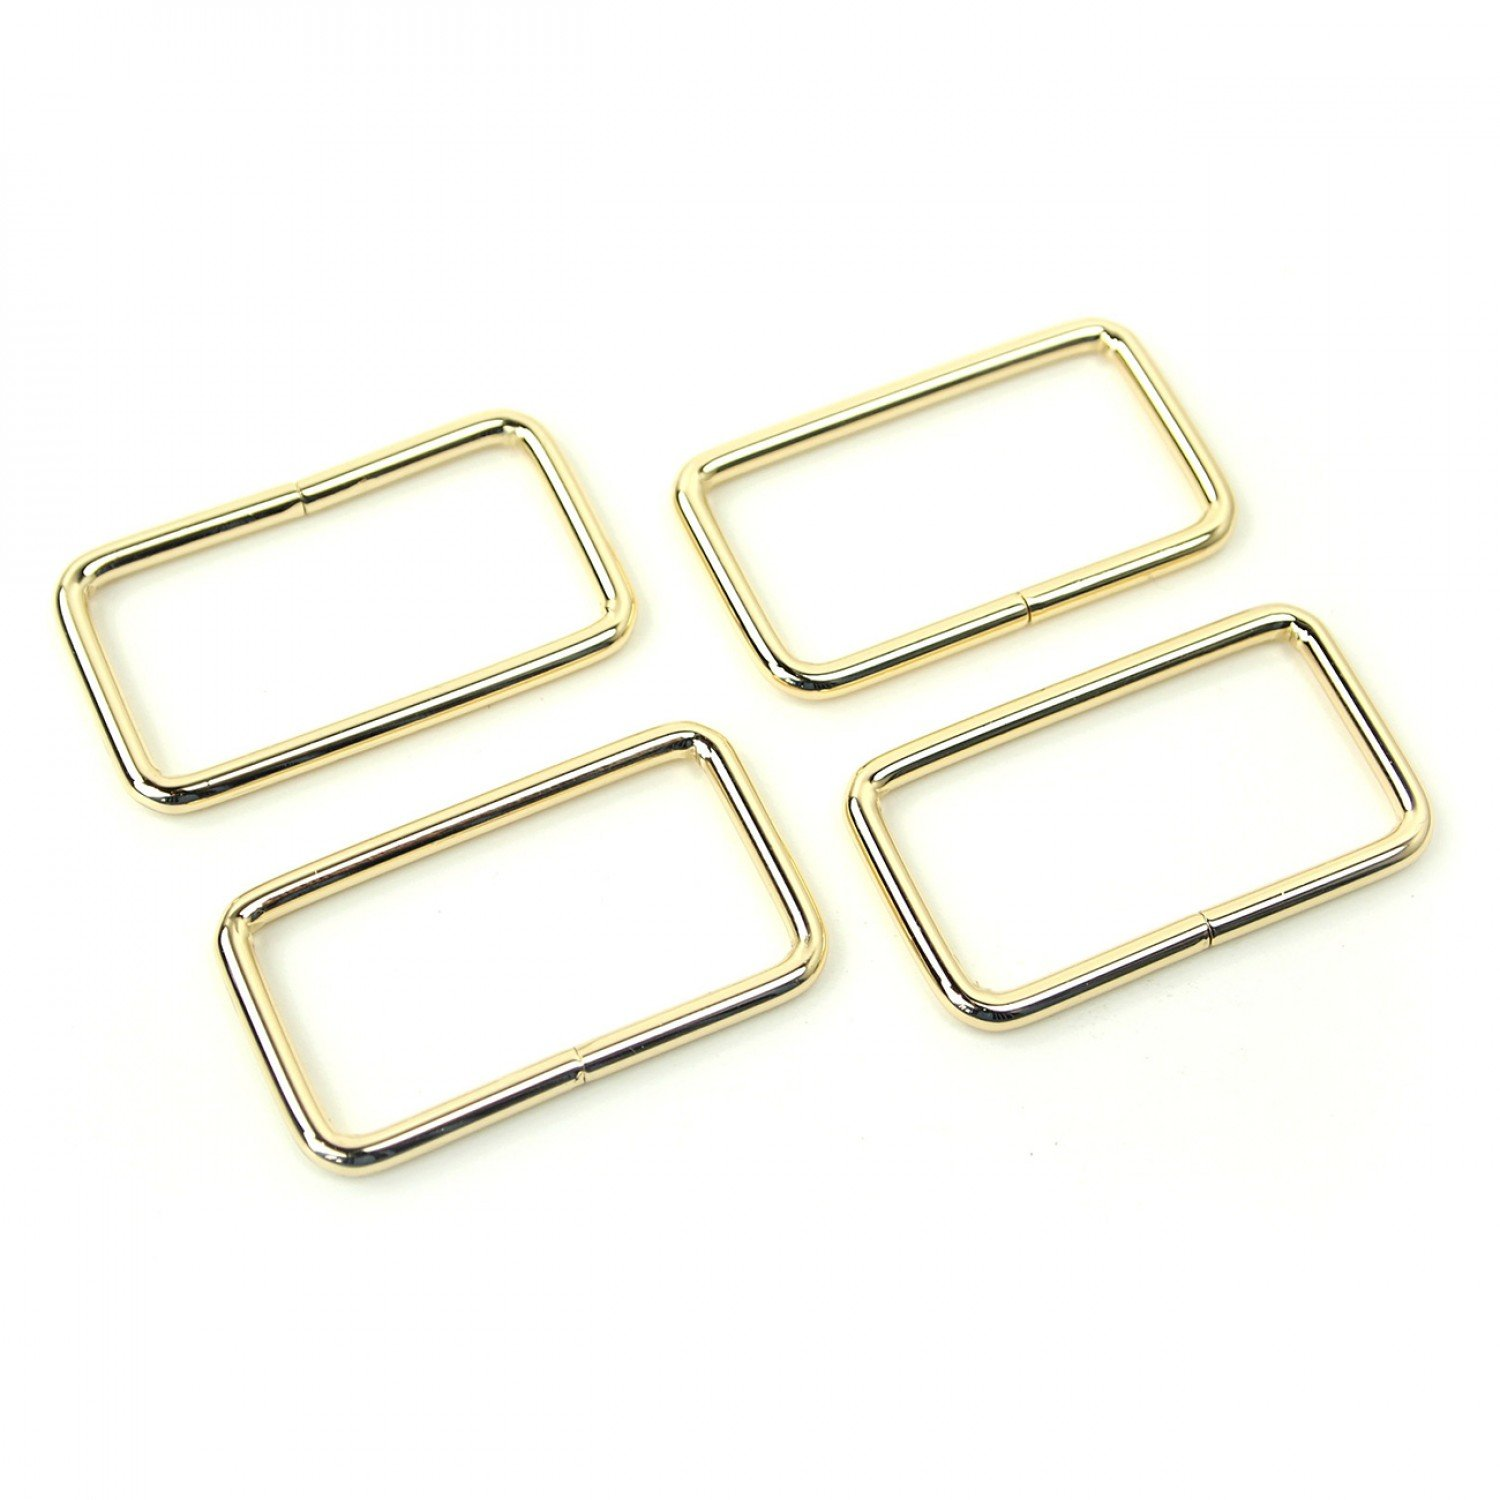 1.5 Rectangle Rings 4pc by Sallie Tomato